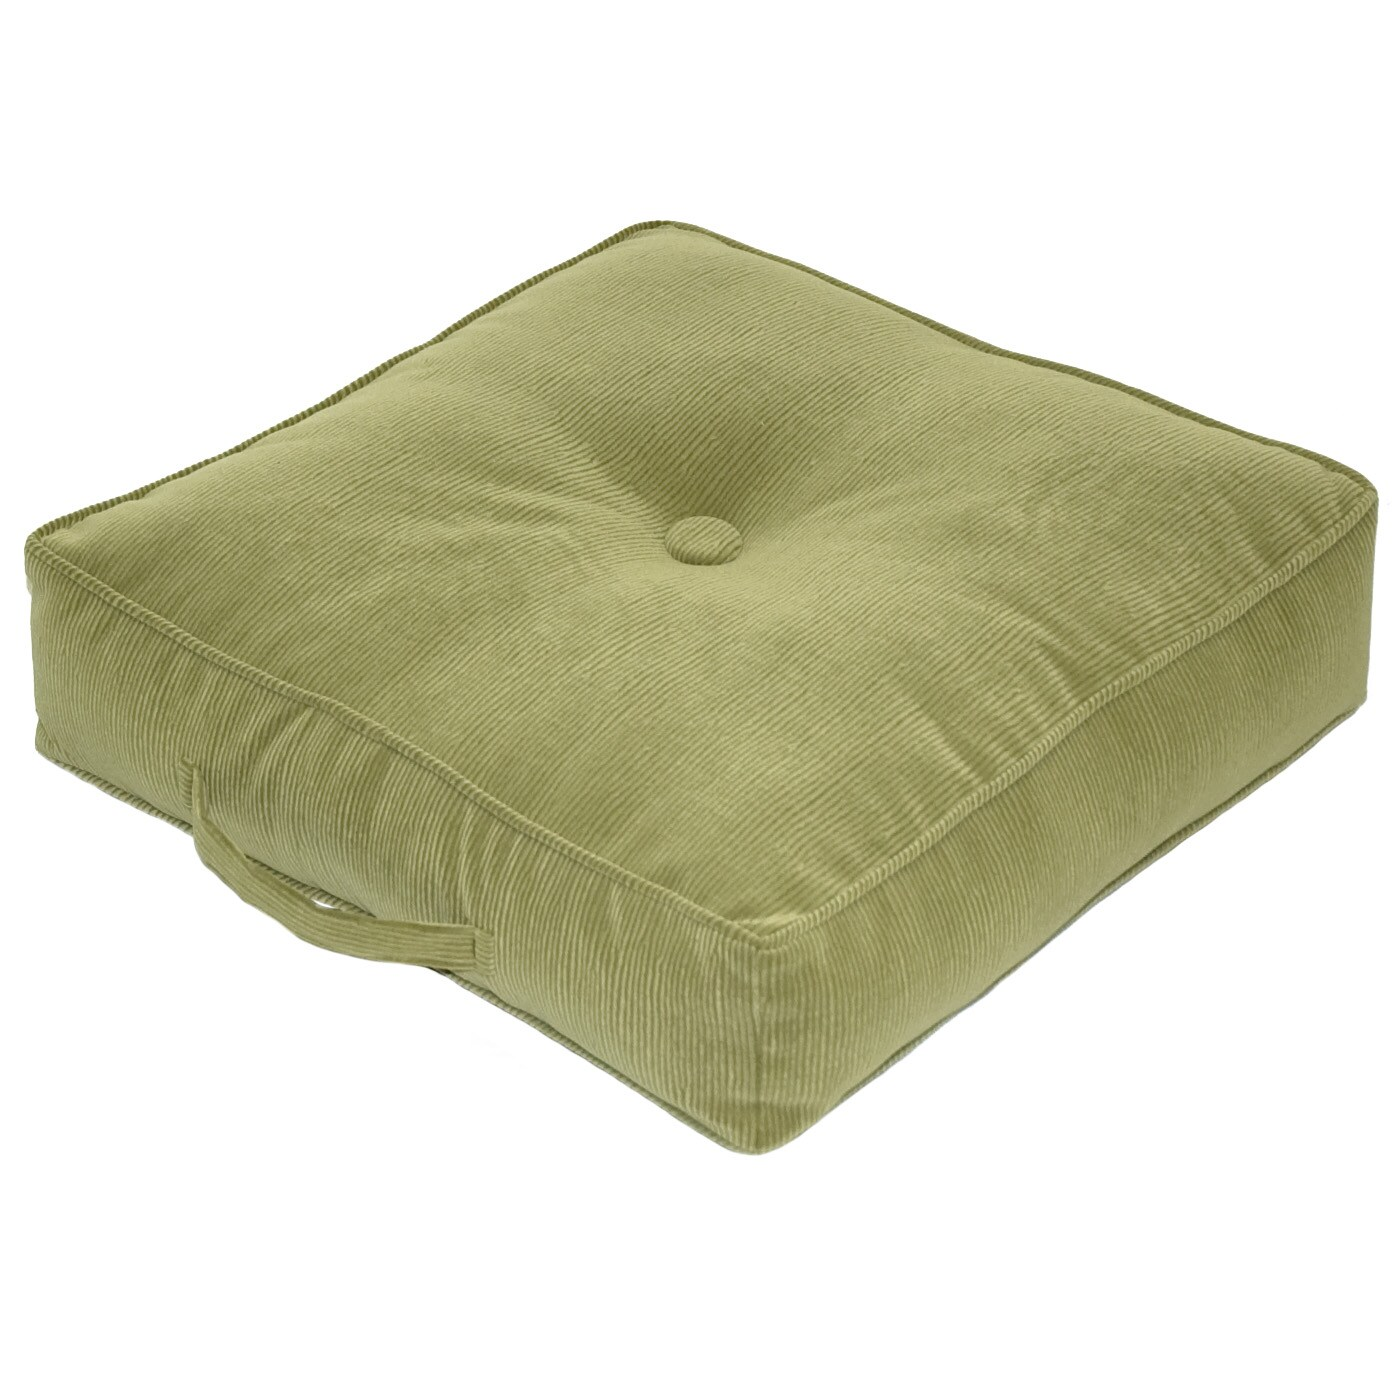 Ribbed Microfiber 20 inch Olive Square Floor Pillow  : Ribbed Microfiber 20 inch Olive Square Floor Pillow L14351258 from www.overstock.com size 1396 x 1396 jpeg 158kB